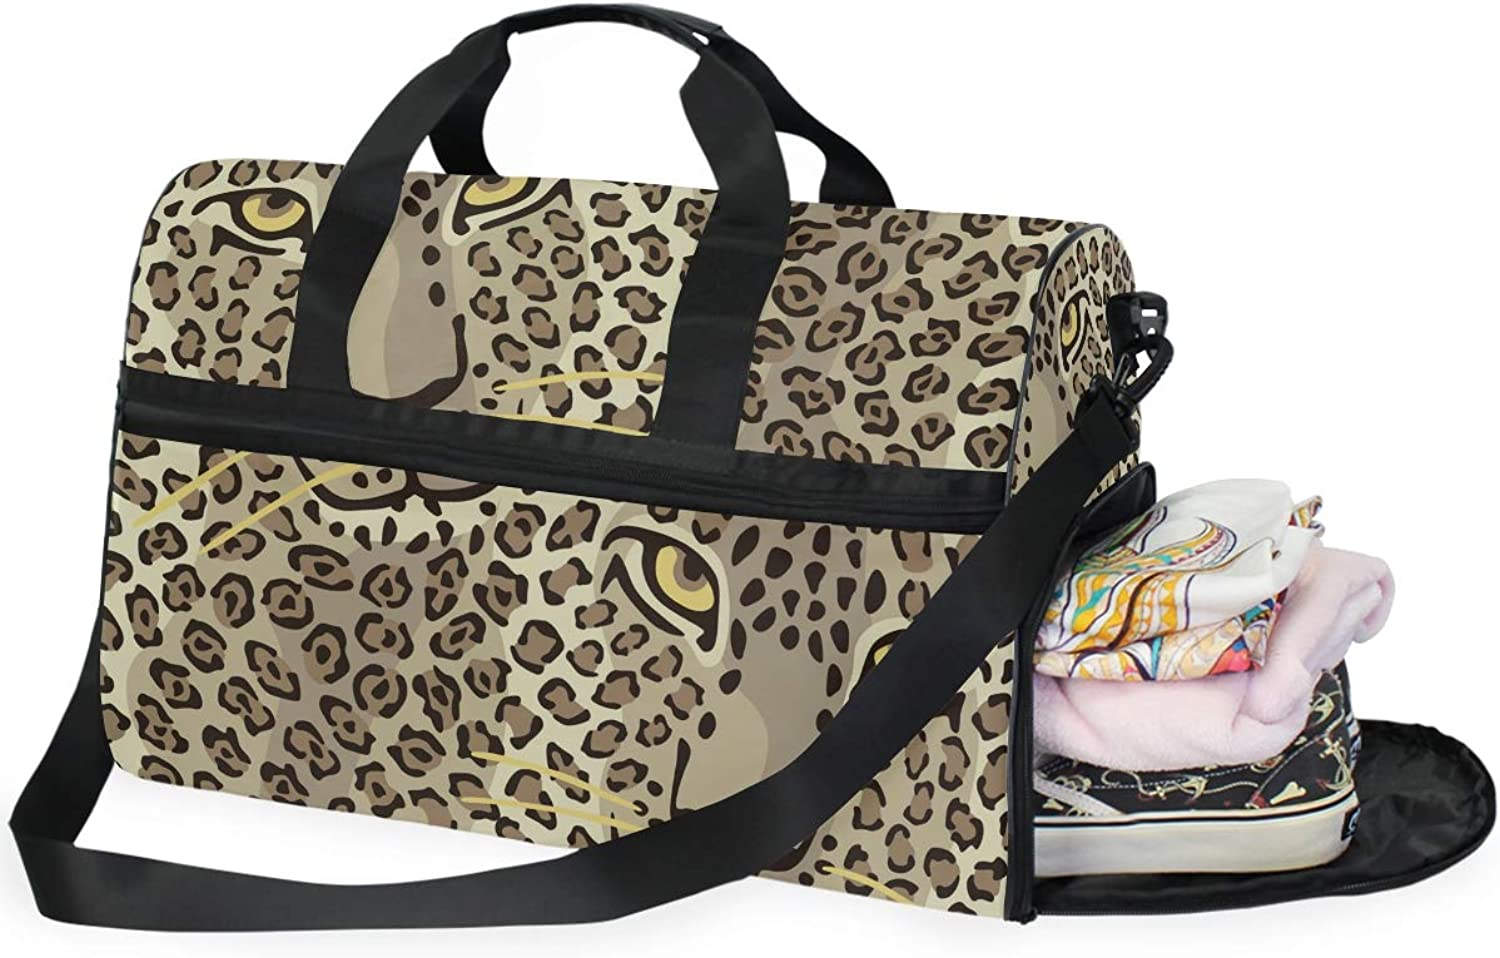 WIHVE Sports Gym Bag with shoes Compartment Cat Leopard Skins Travel Duffel Bag